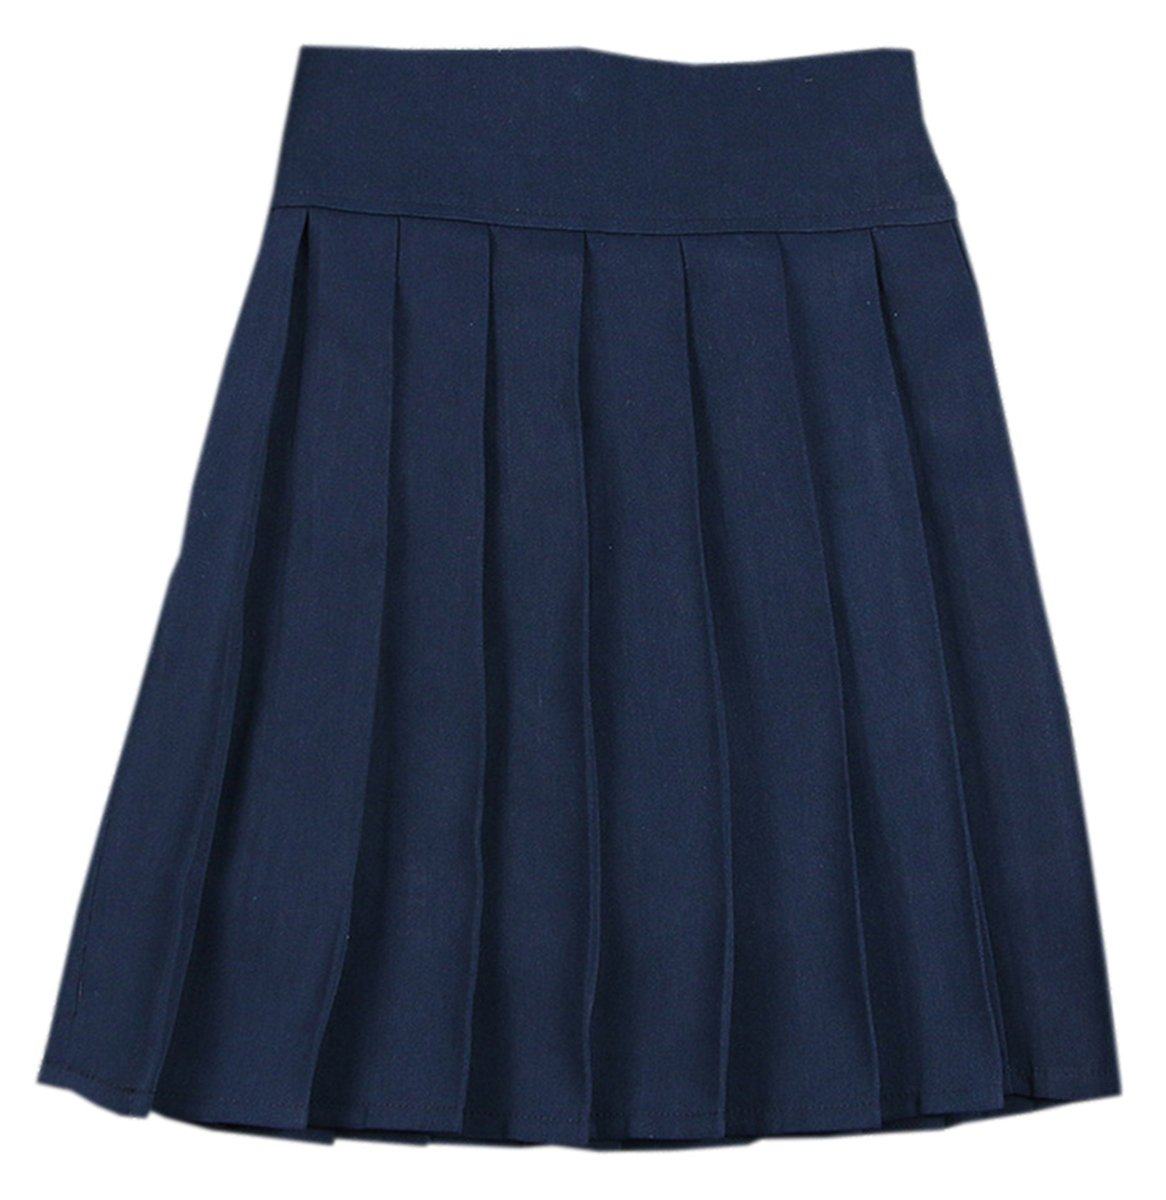 Women's High Waist Solid Plain Pleated School Uniform A-Line Skirt, Navy, Tag L = US M